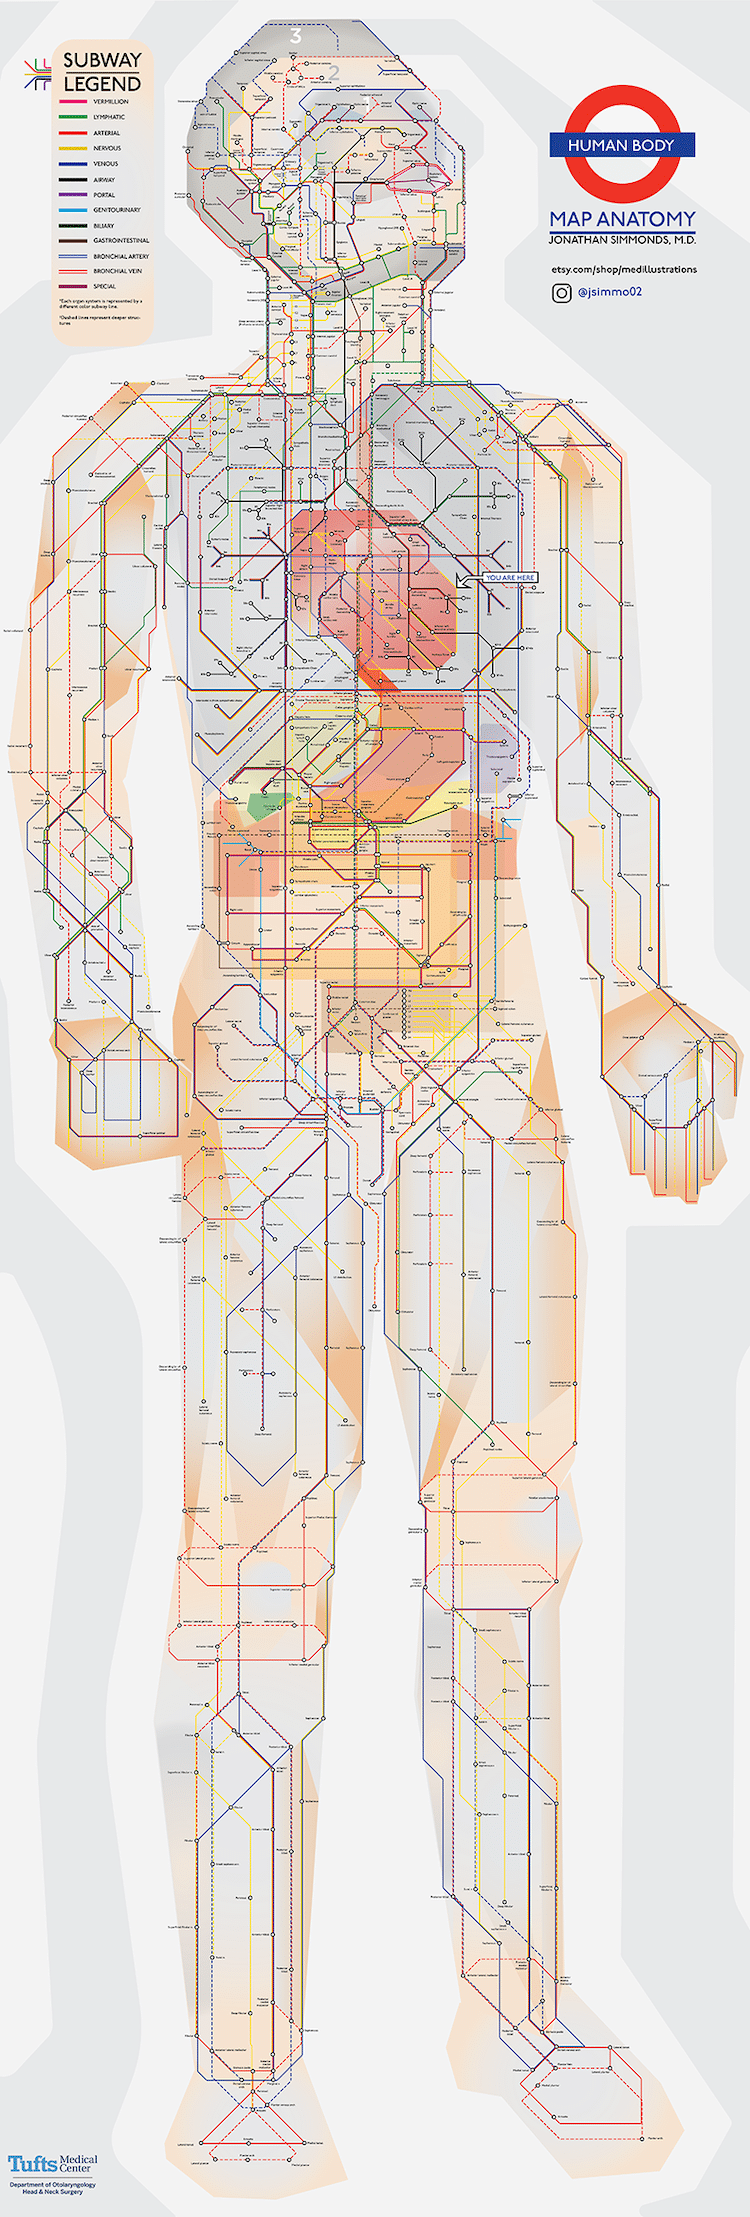 Human Anatomy Subway Map